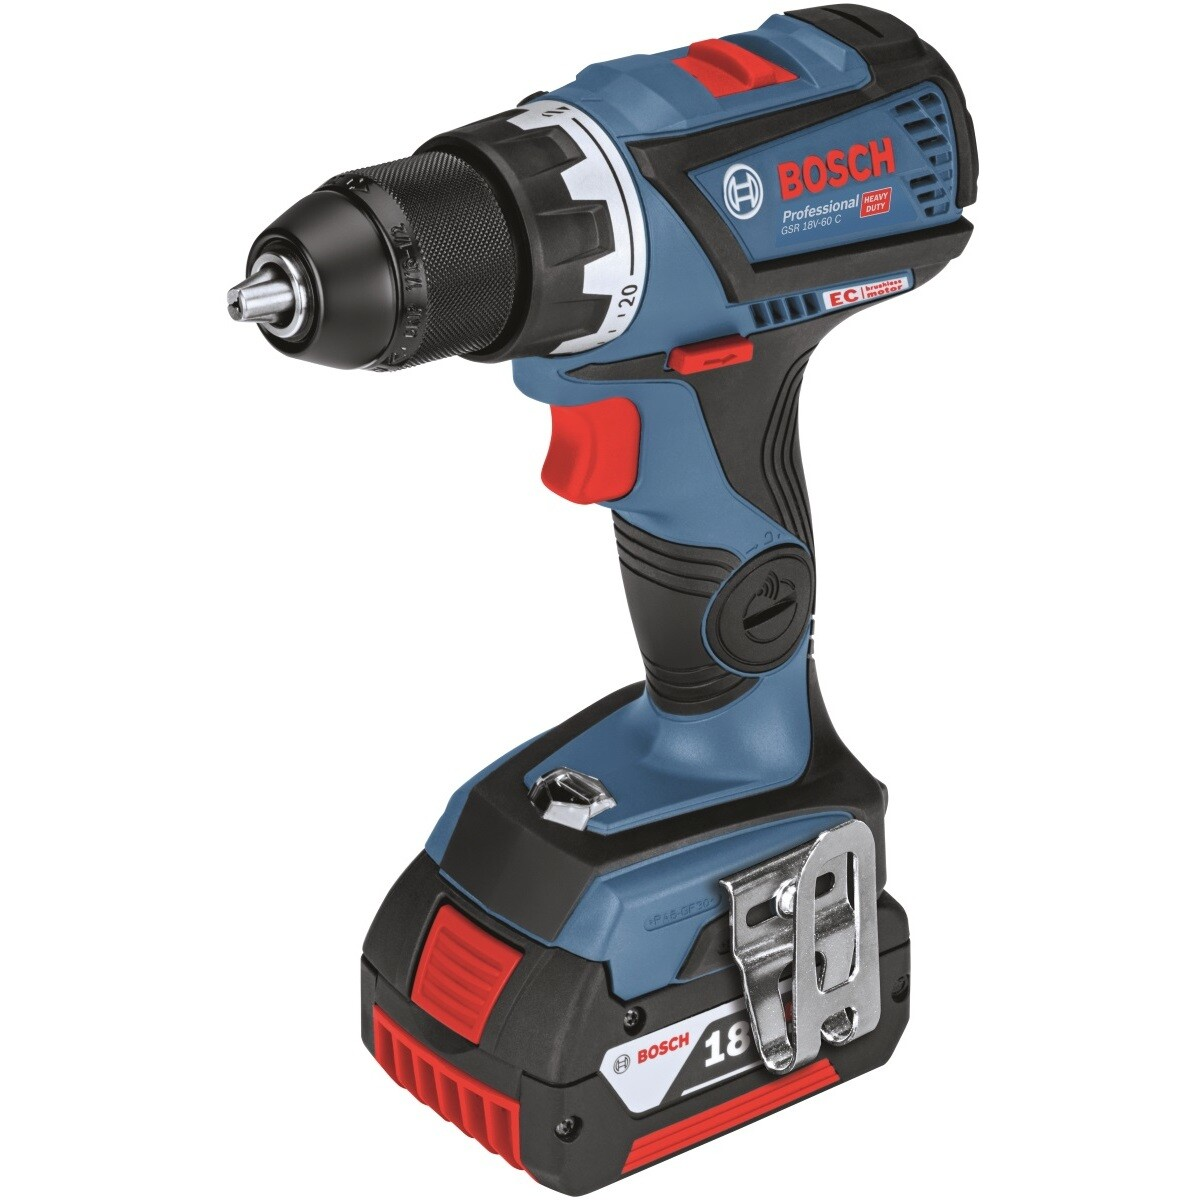 Bosch GSR 18V-60 C C Body Only 18V Brushless Drill/Driver in Carton - Connection Ready